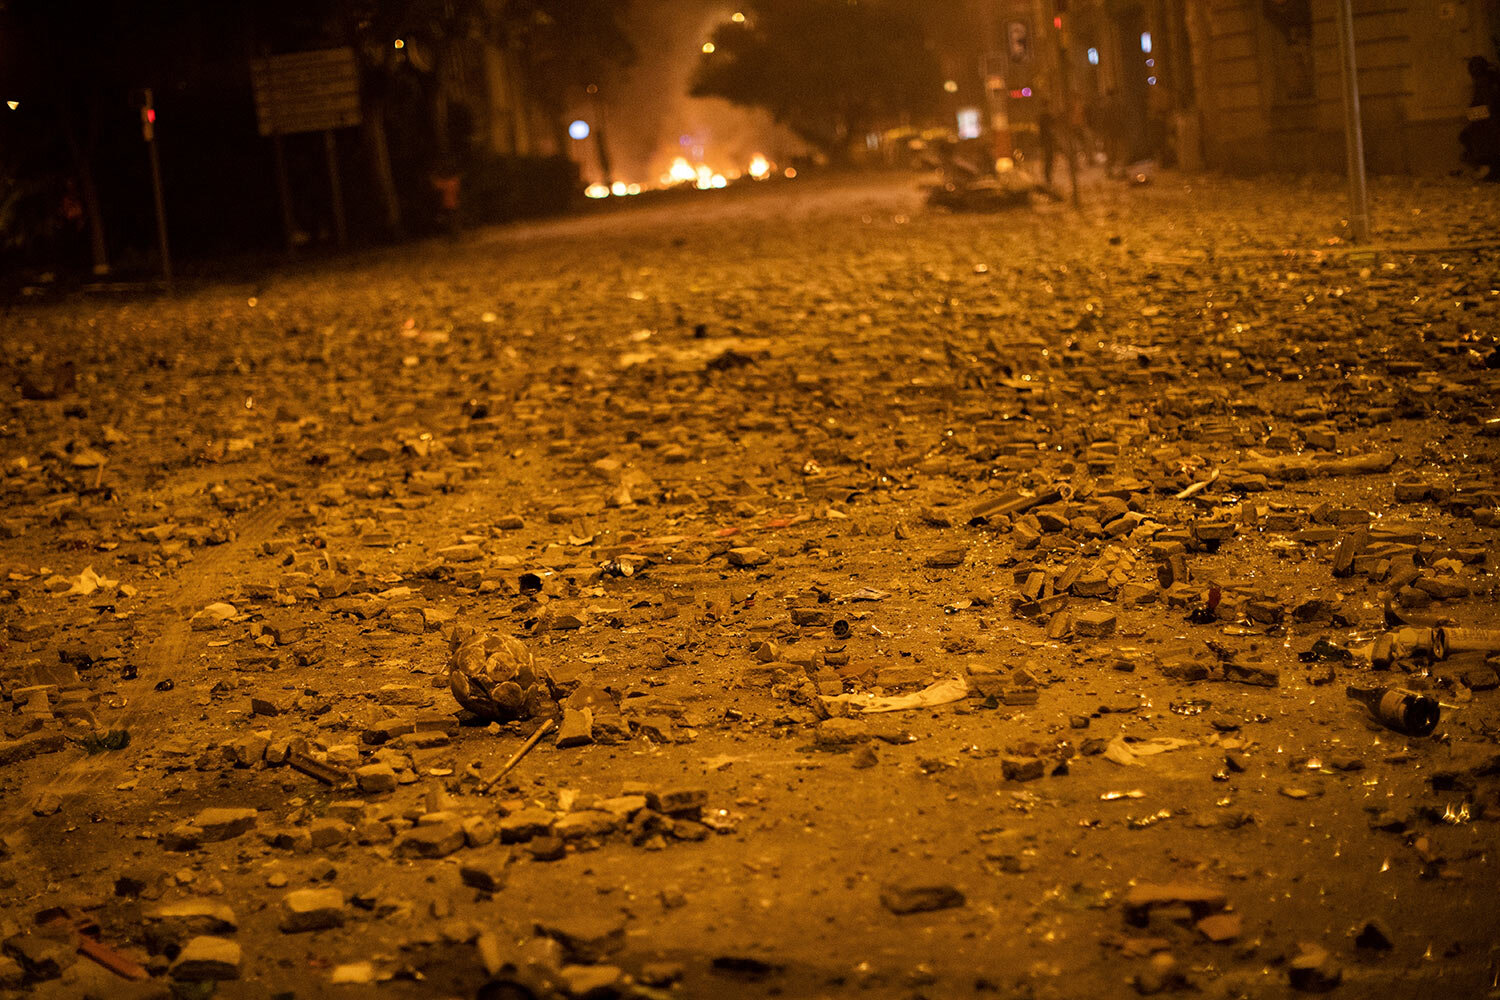 A street full of stones during clashes between police and Catalan pro-independence protestors in Barcelona, Spain, Friday, Oct. 18, 2019.(AP Photo/Bernat Armangue)